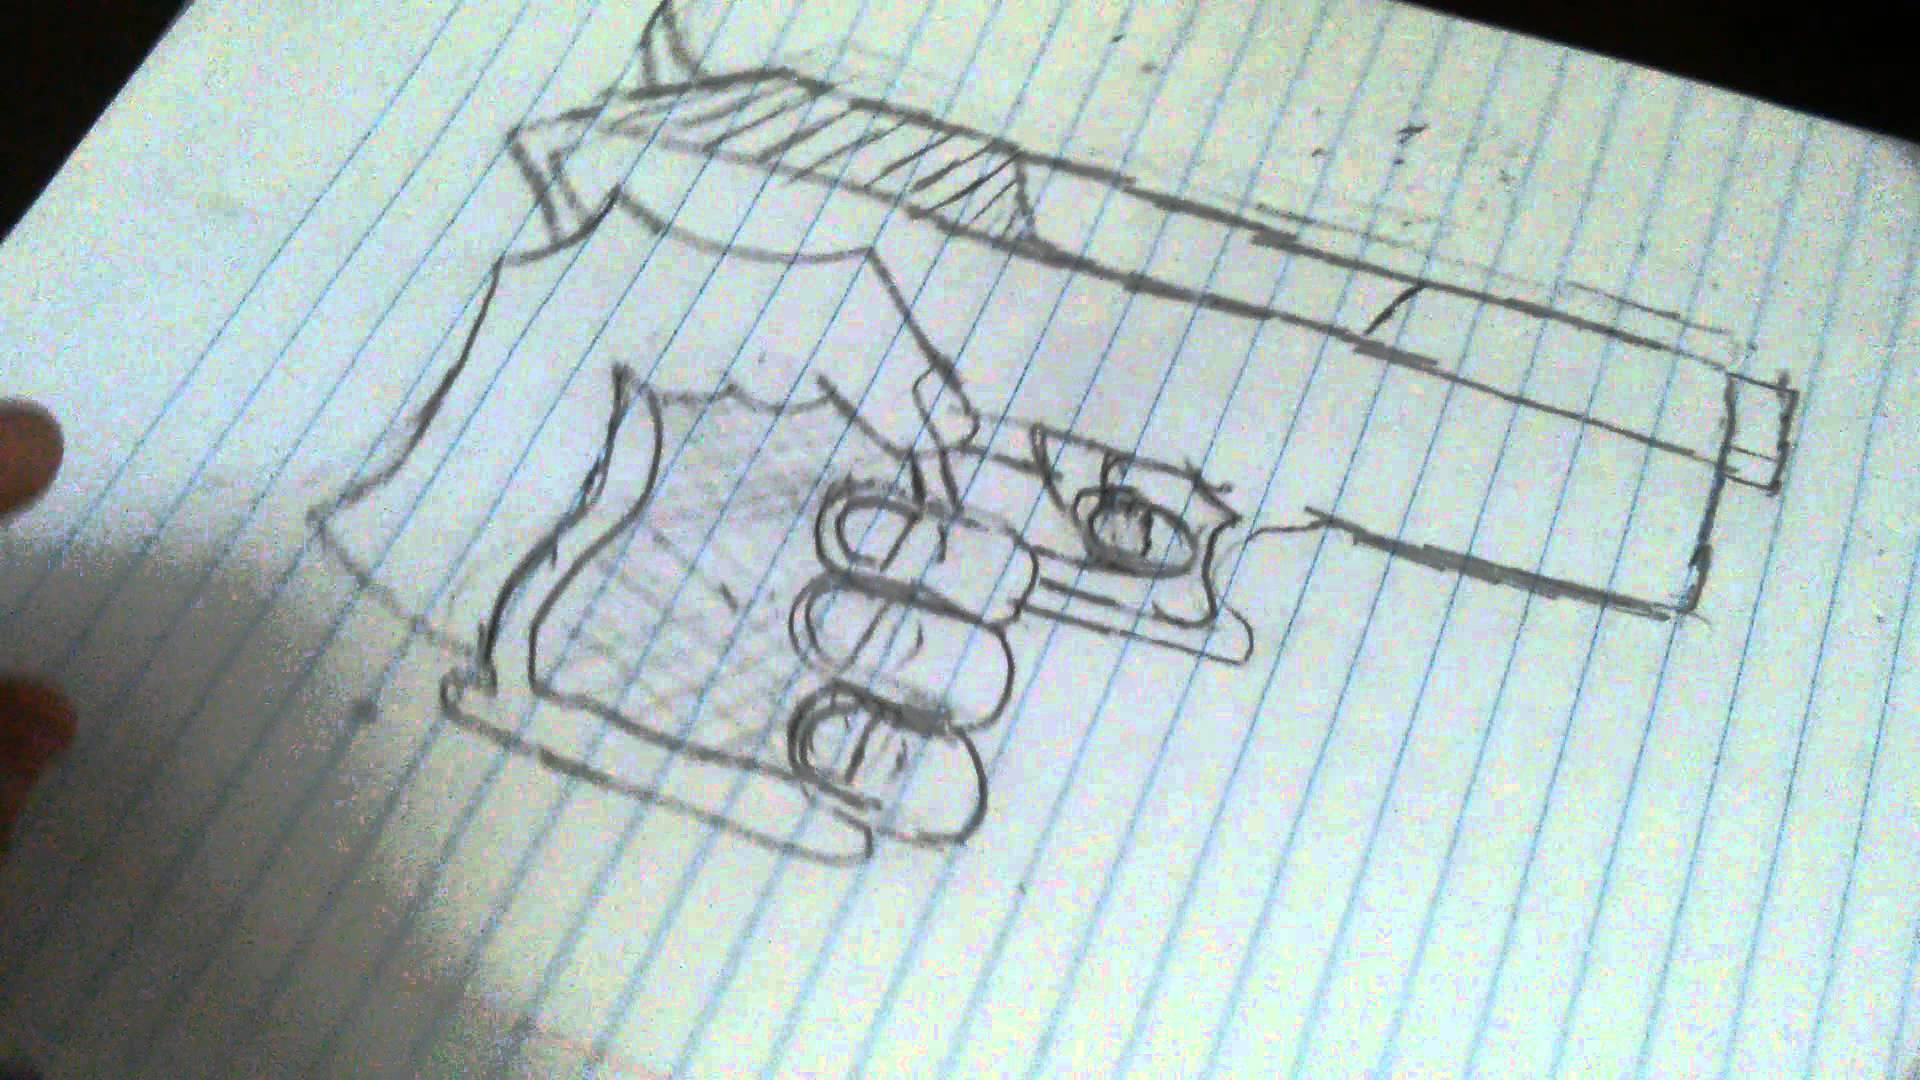 Drawn pistol hand holding To and YouTube 2 thumbs